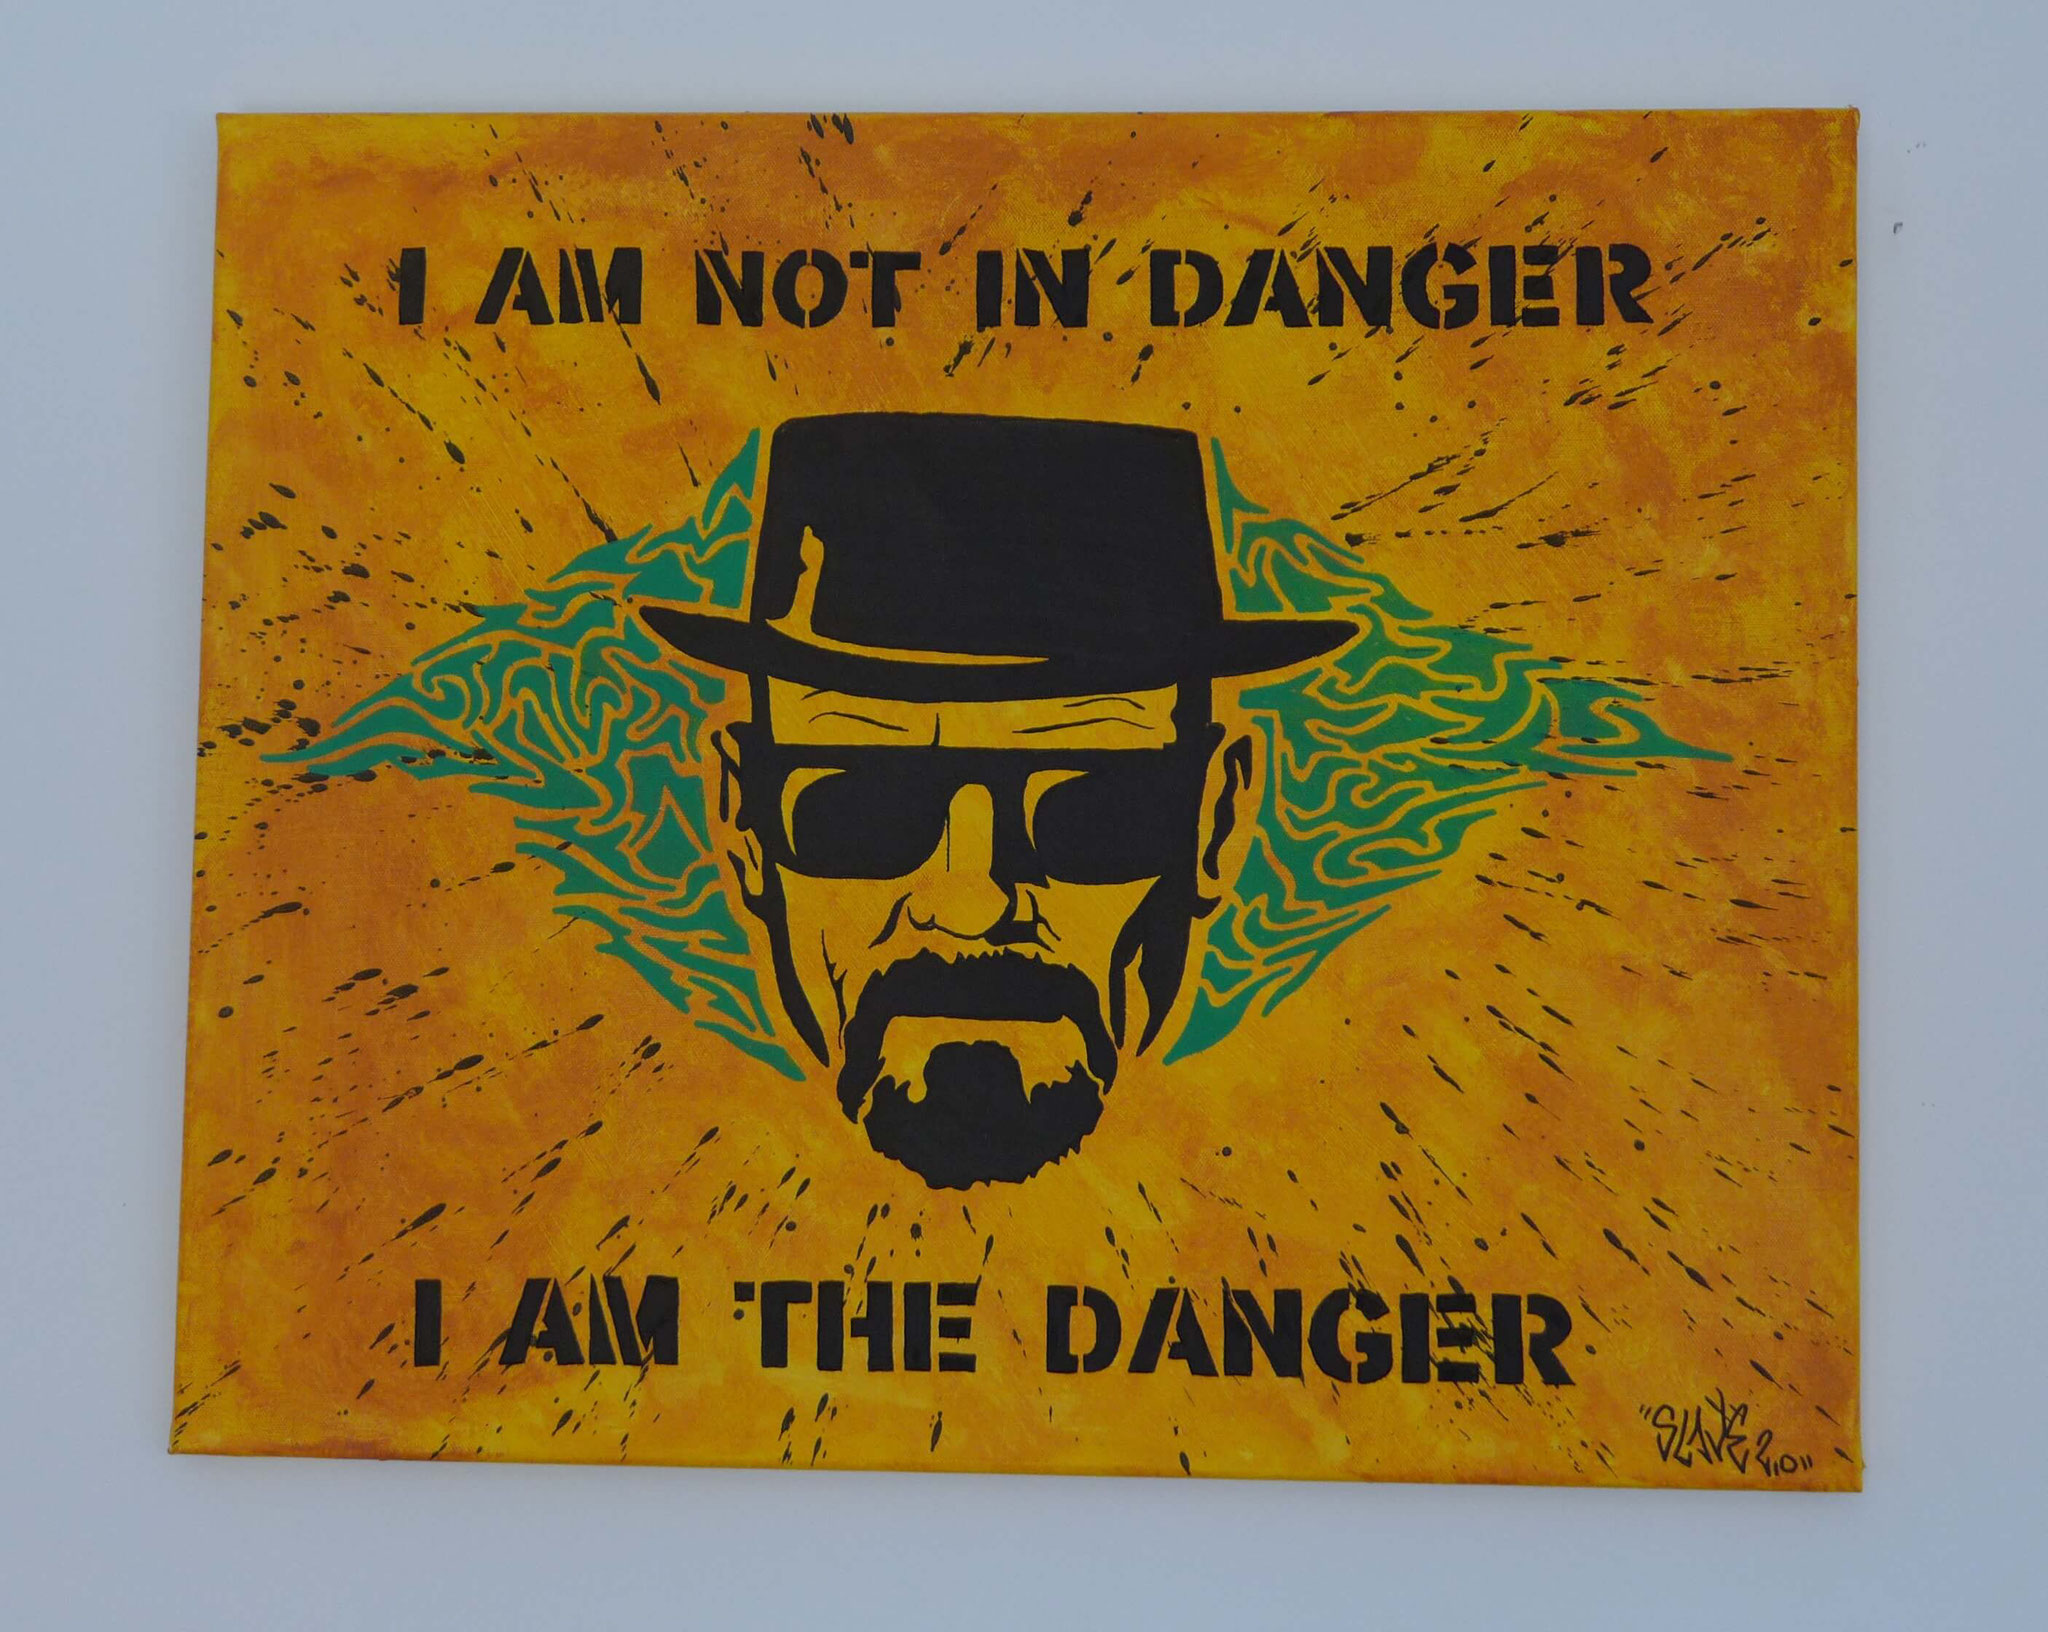 heisenberg-street-art-i-am-the-danger-toile-tableau-slave-2.0